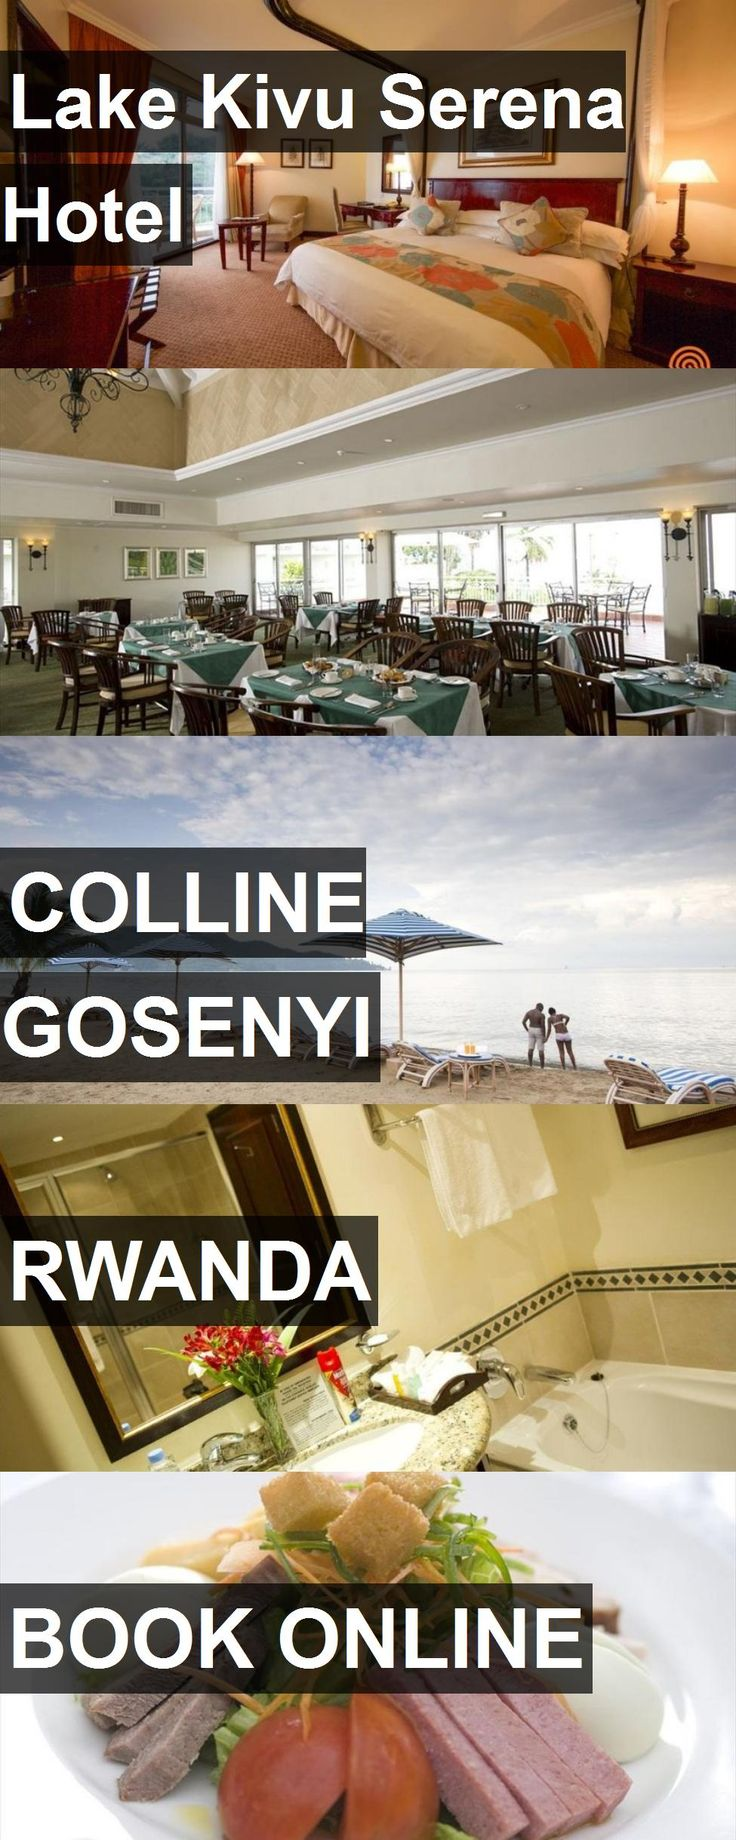 Hotel Lake Kivu Serena Hotel in Colline Gosenyi, Rwanda. For more information, photos, reviews and best prices please follow the link. #Rwanda #CollineGosenyi #LakeKivuSerenaHotel #hotel #travel #vacation